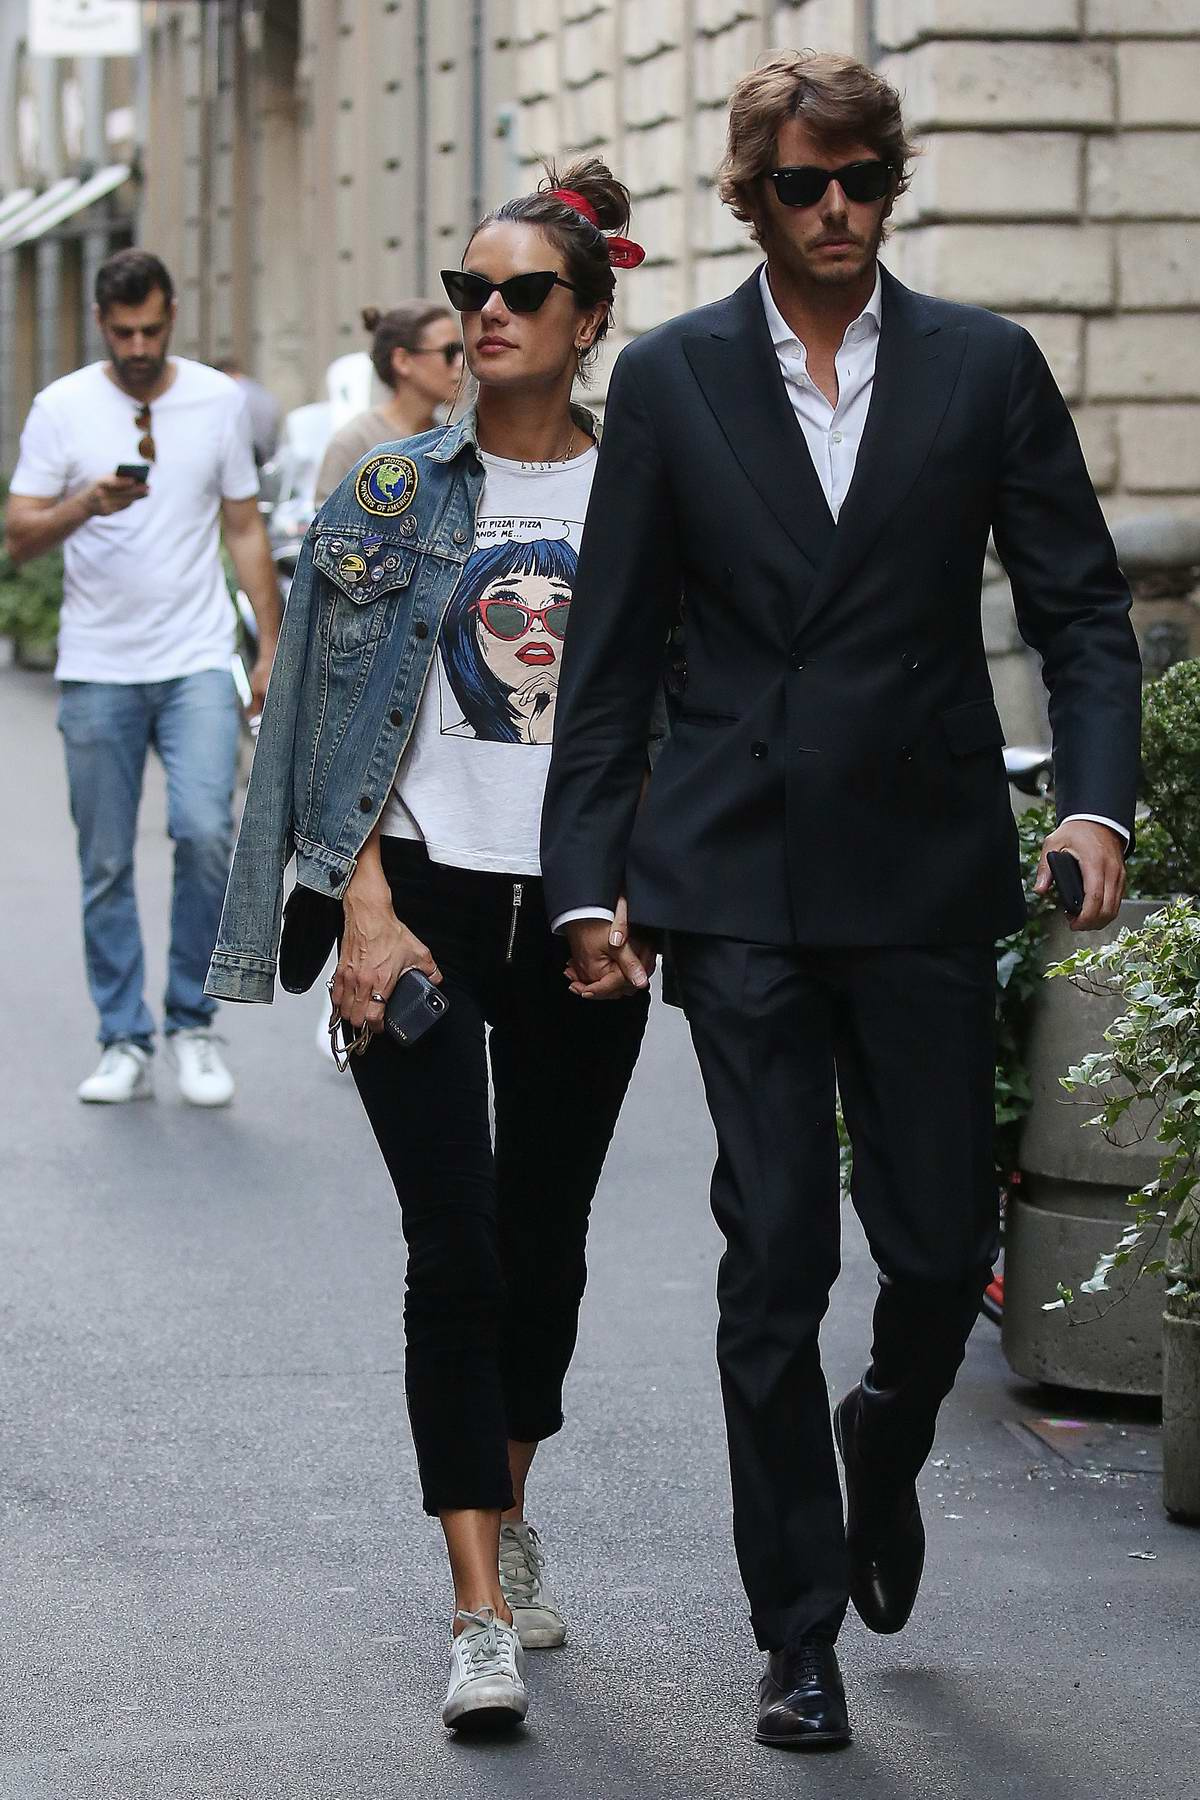 Alessandra Ambrosio and Nicolo Oddi enjoy a romantic lunch date while out in Milan, Italy